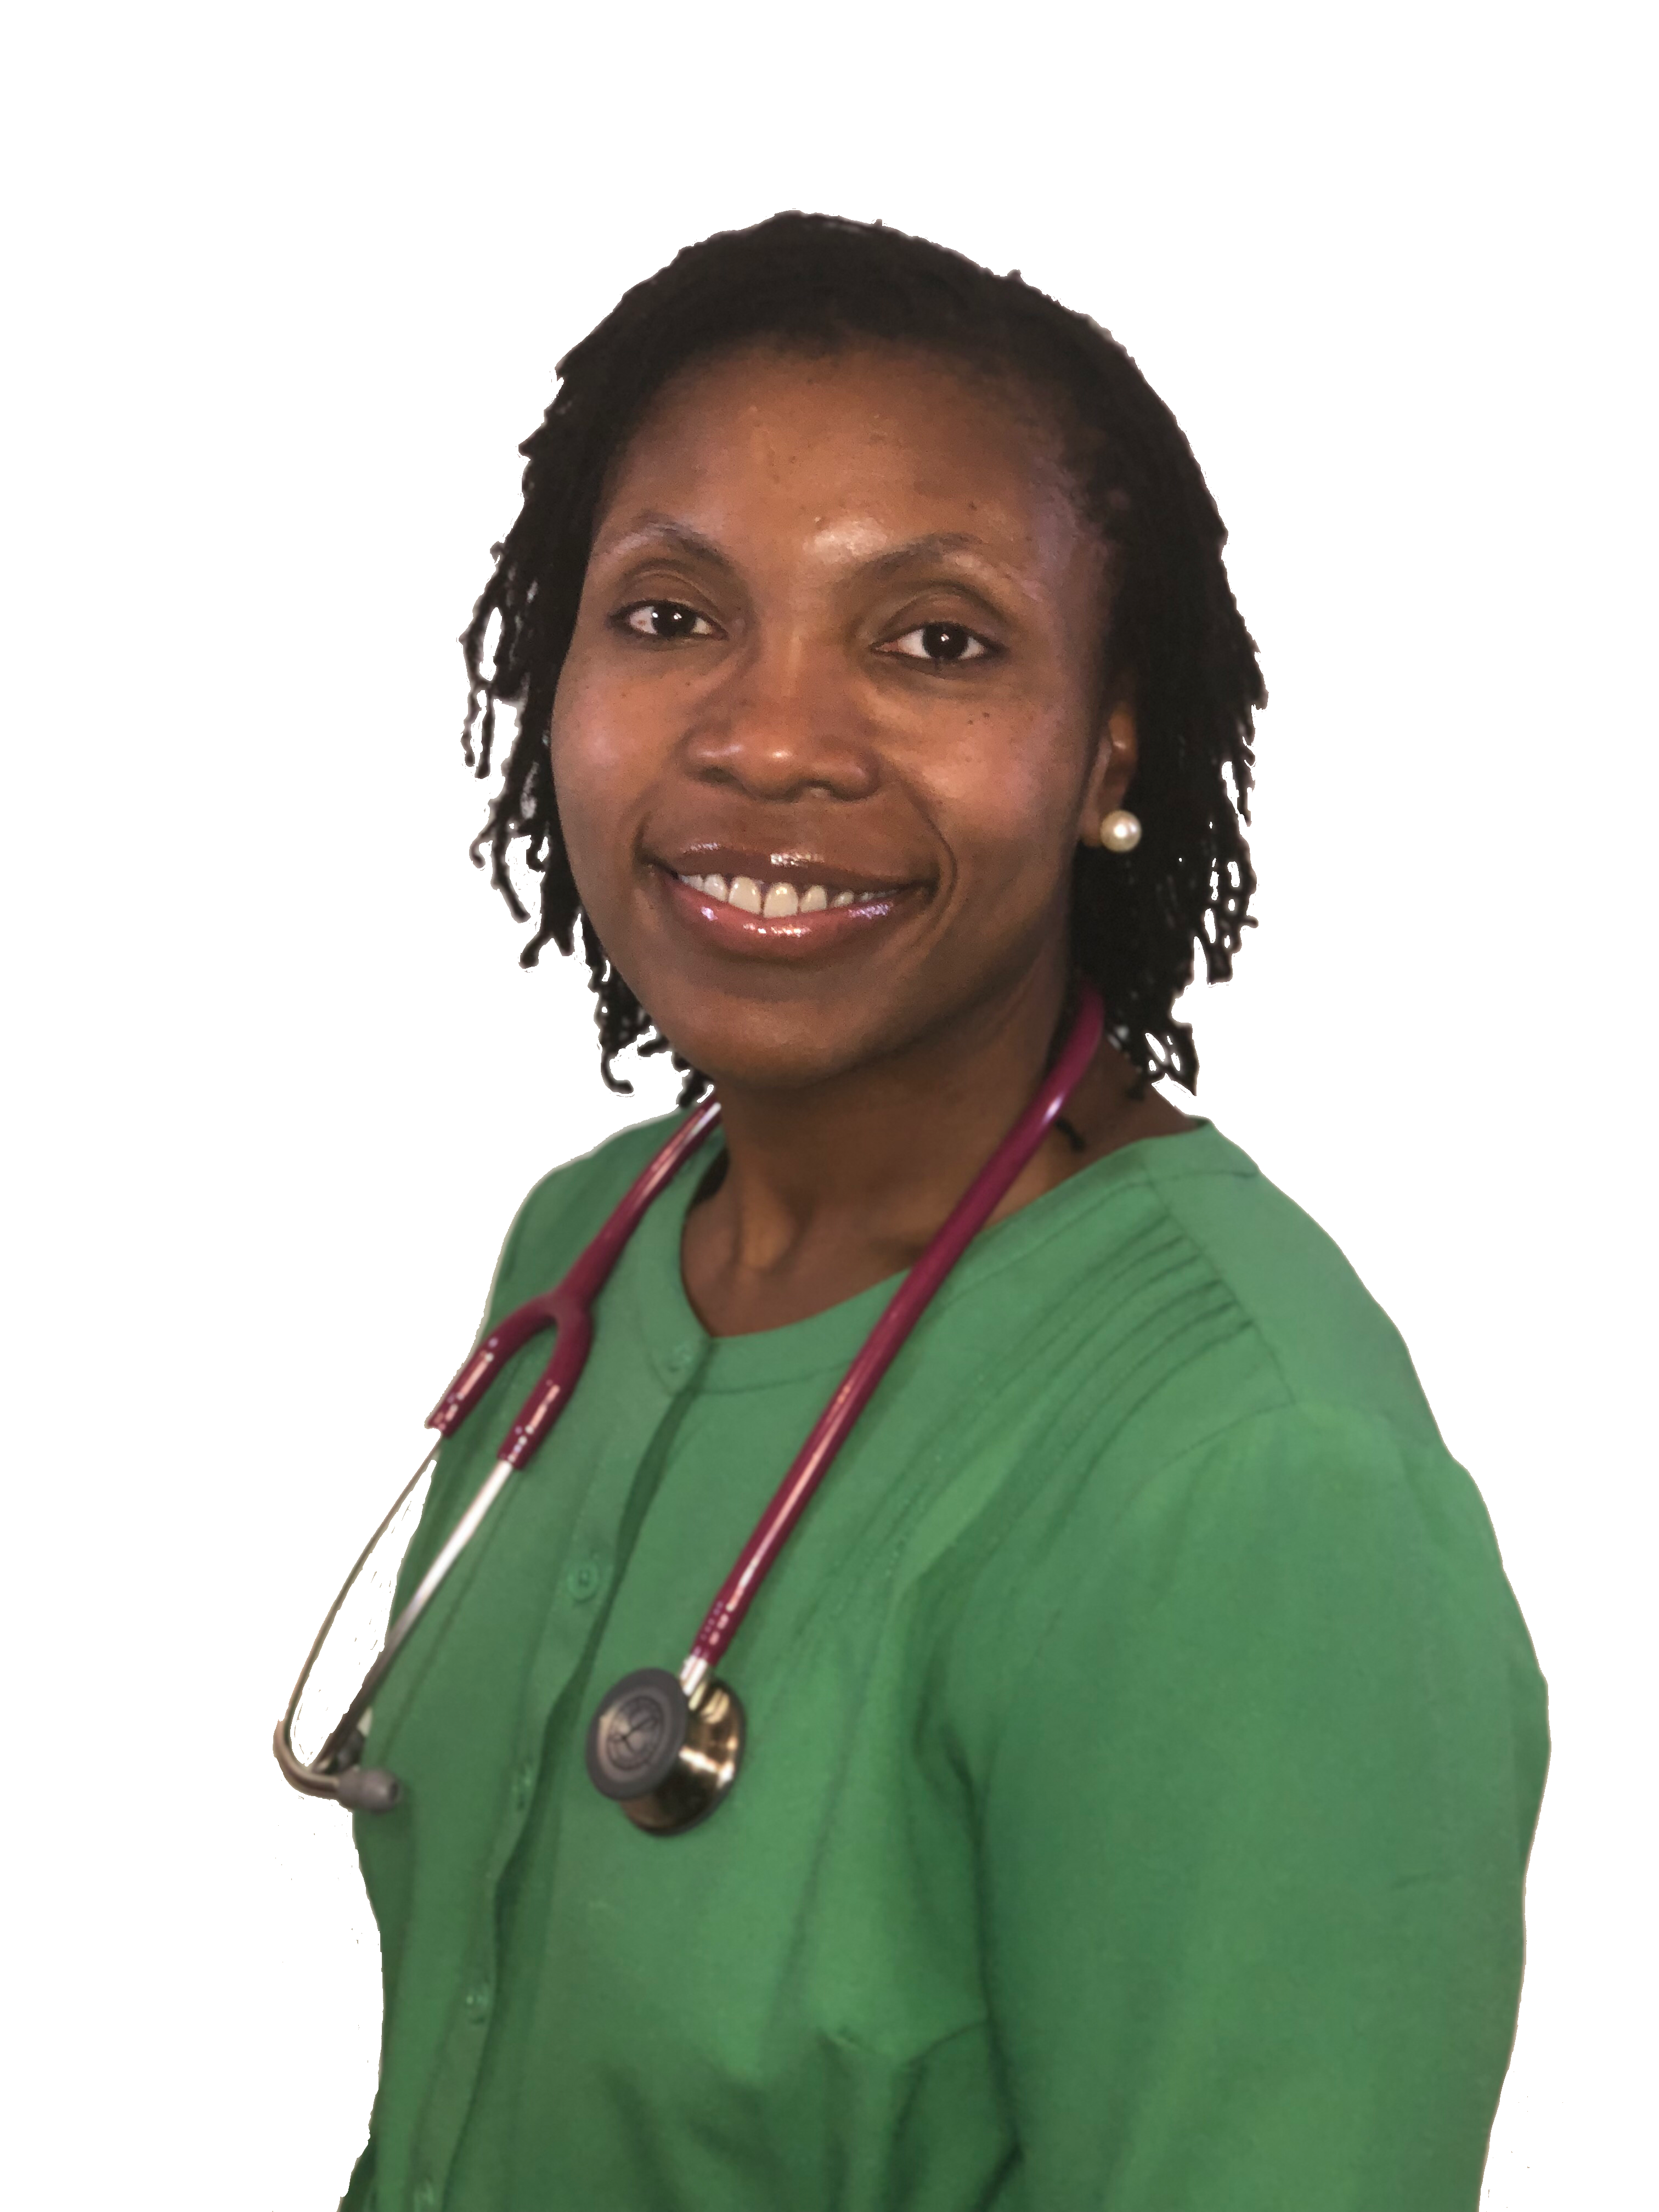 Dr. Shayla Toombs-Withers